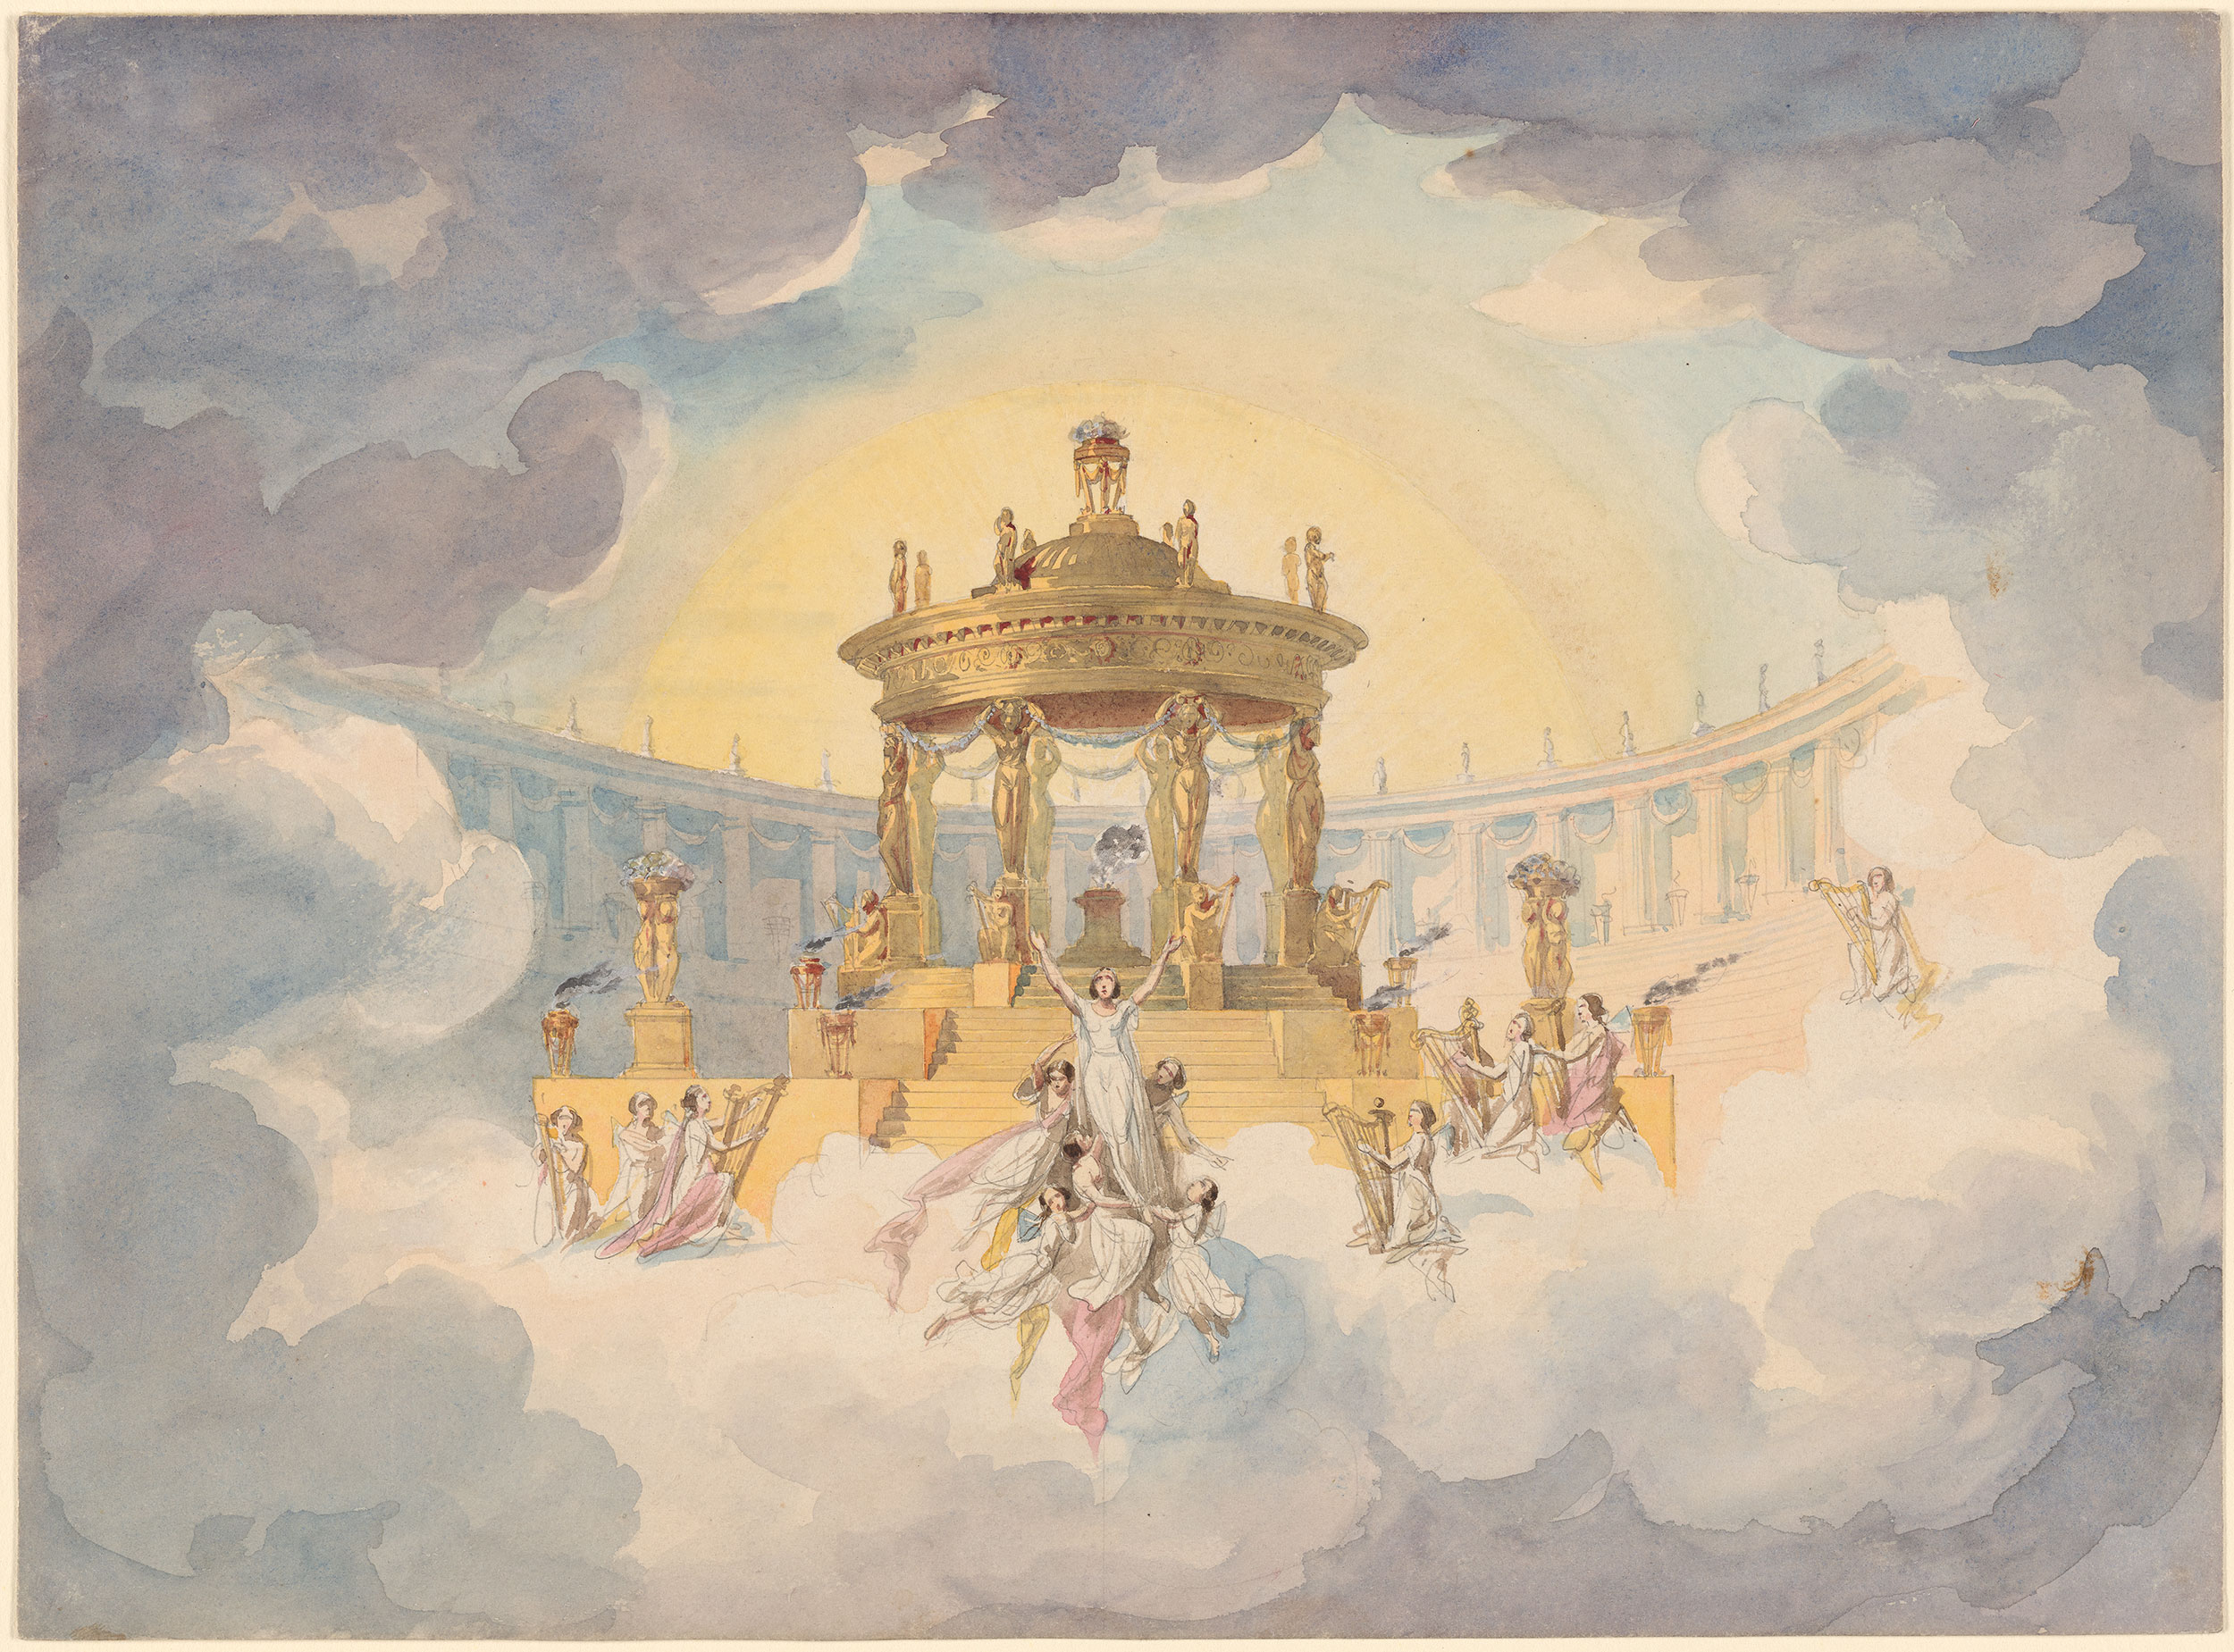 """Andreas Leonhard Roller (1805-1880) Apotheosis Scene from """"Faust""""ca. 1870. Pencil and watercolor on paper."""